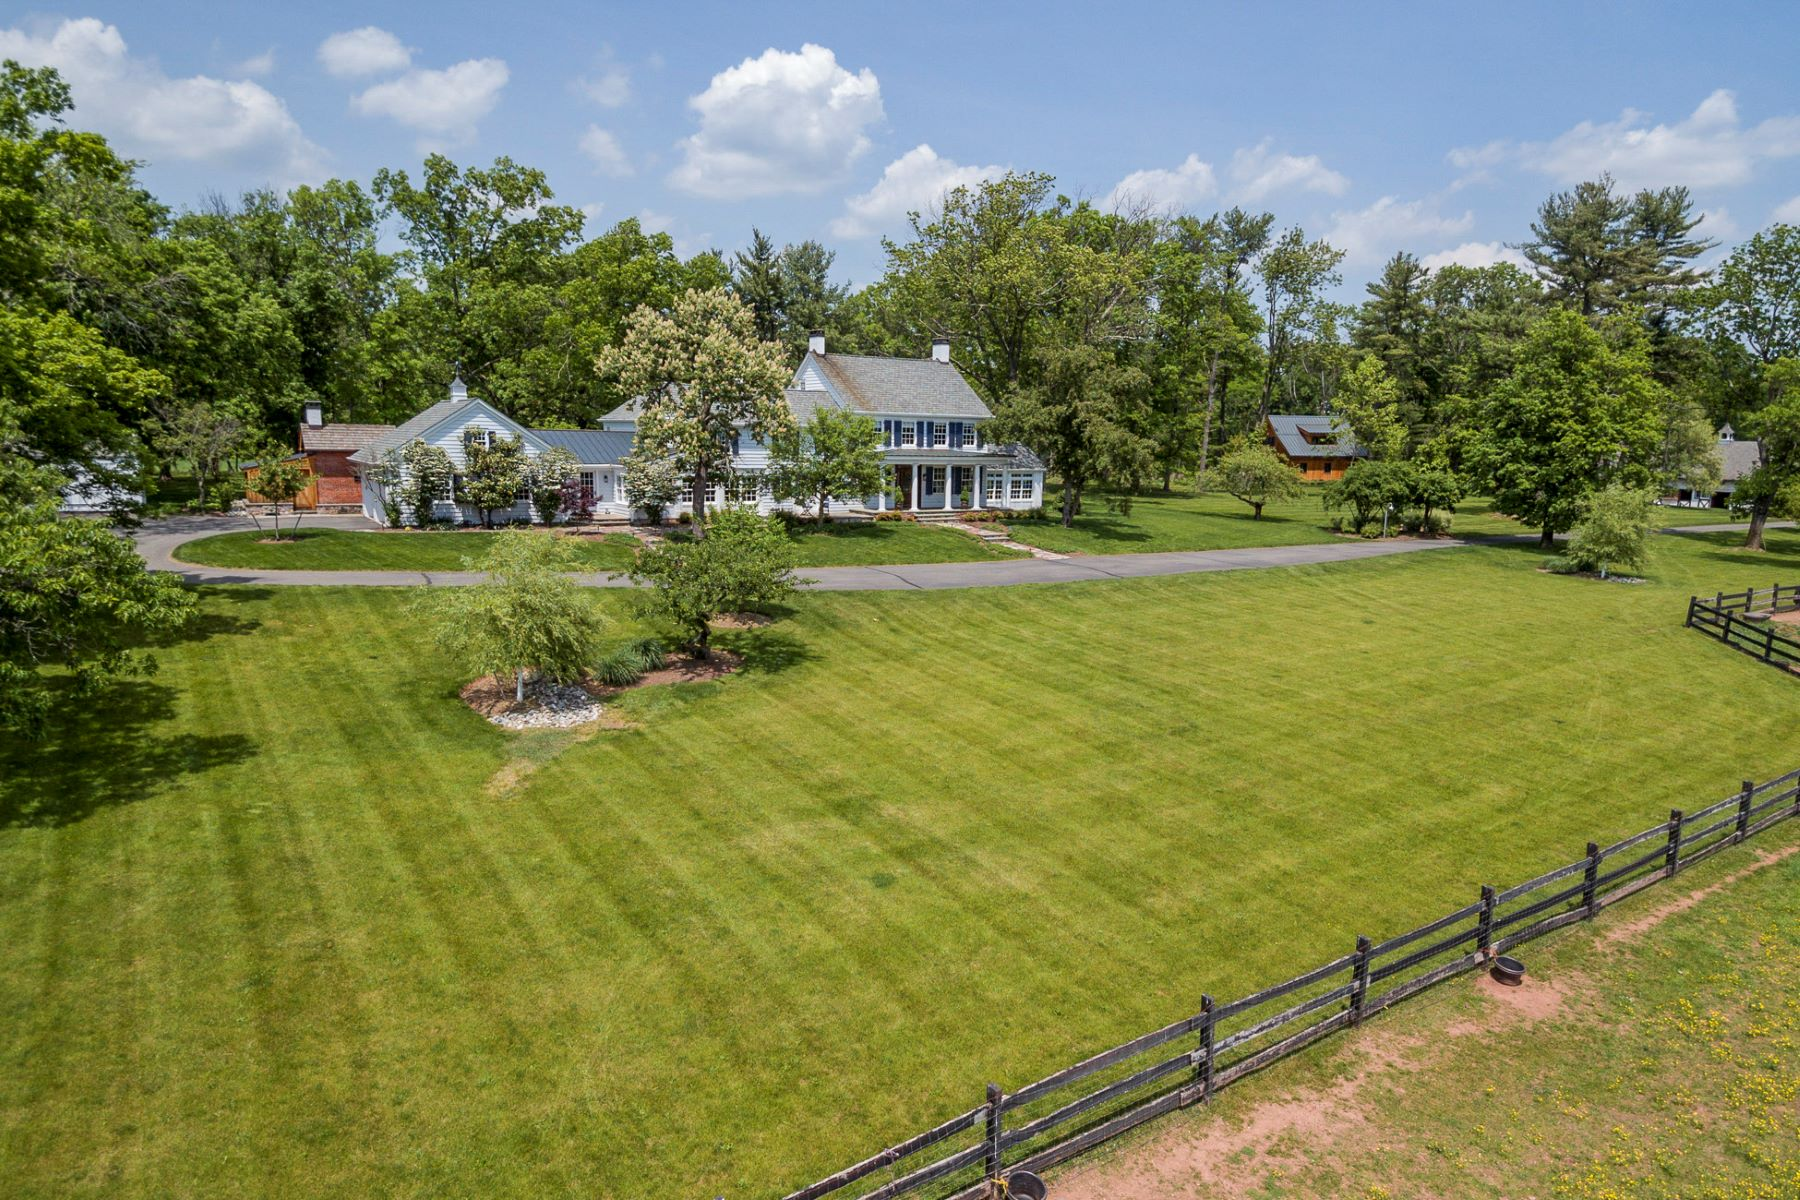 Maison unifamiliale pour l Vente à Historic Farm Reimagined for the Modern Equestrian - Hopewell Township 266 Province Line Road, Skillman, New Jersey 08558 États-UnisDans/Autour: Hopewell Township